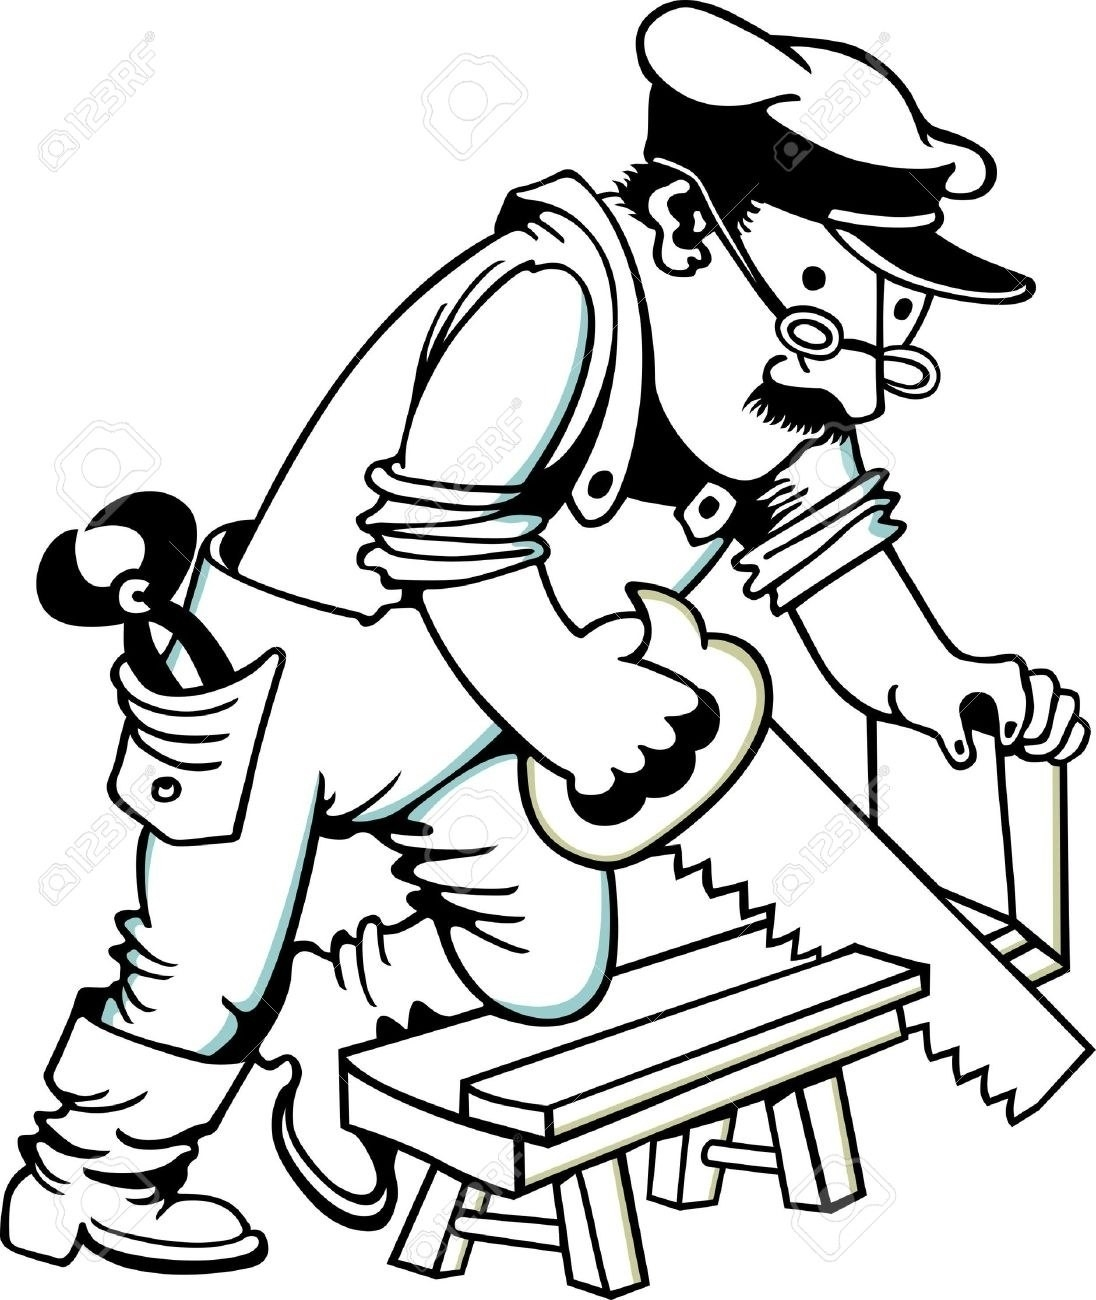 Rudycoby net. Carpenter clipart black and white